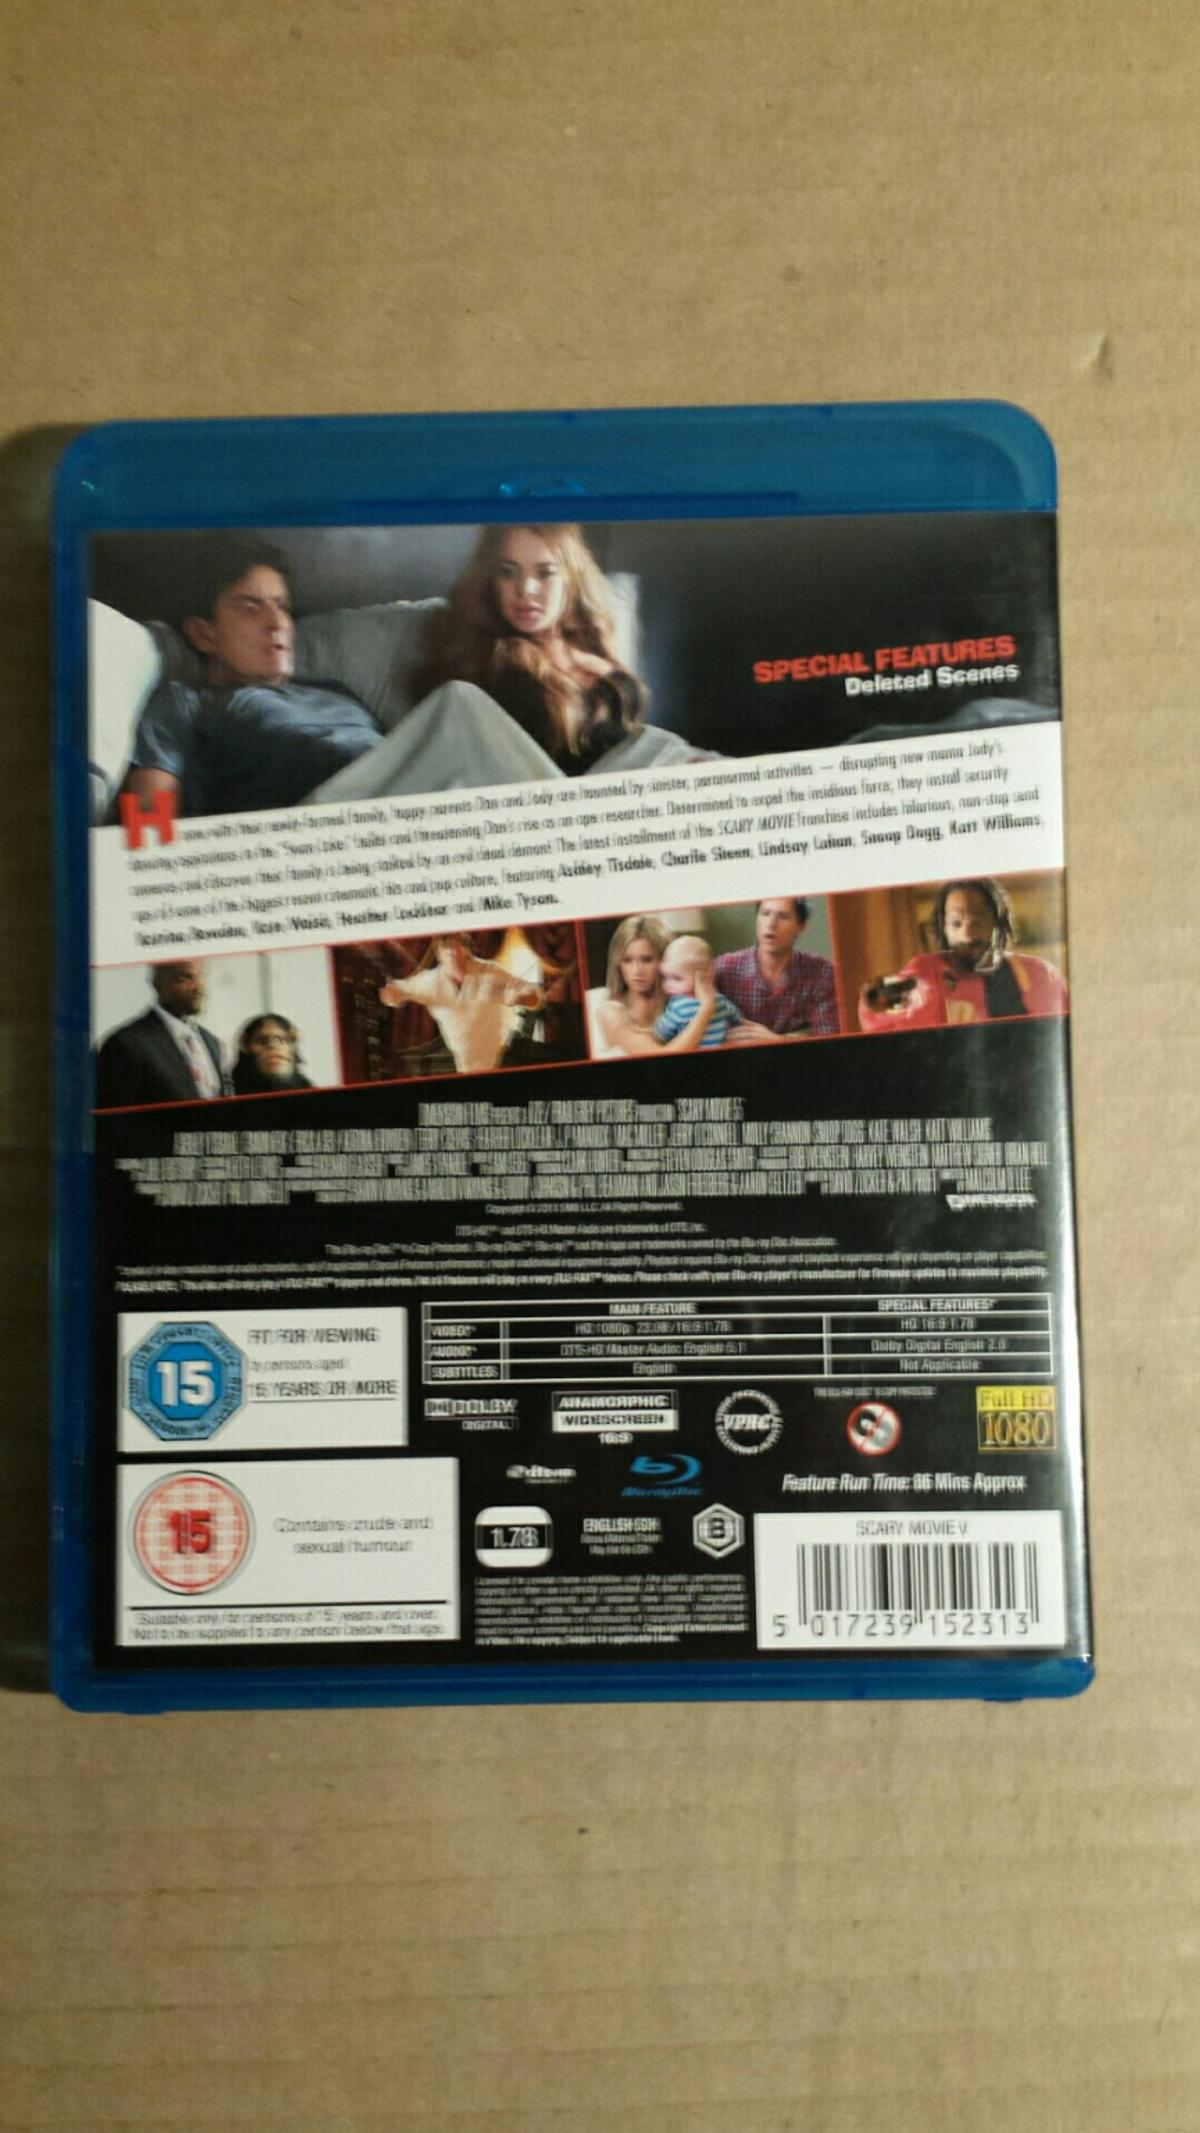 Scary Movie 5 Blu Ray Free Postage In St5 Lyme For 5 00 For Sale Shpock